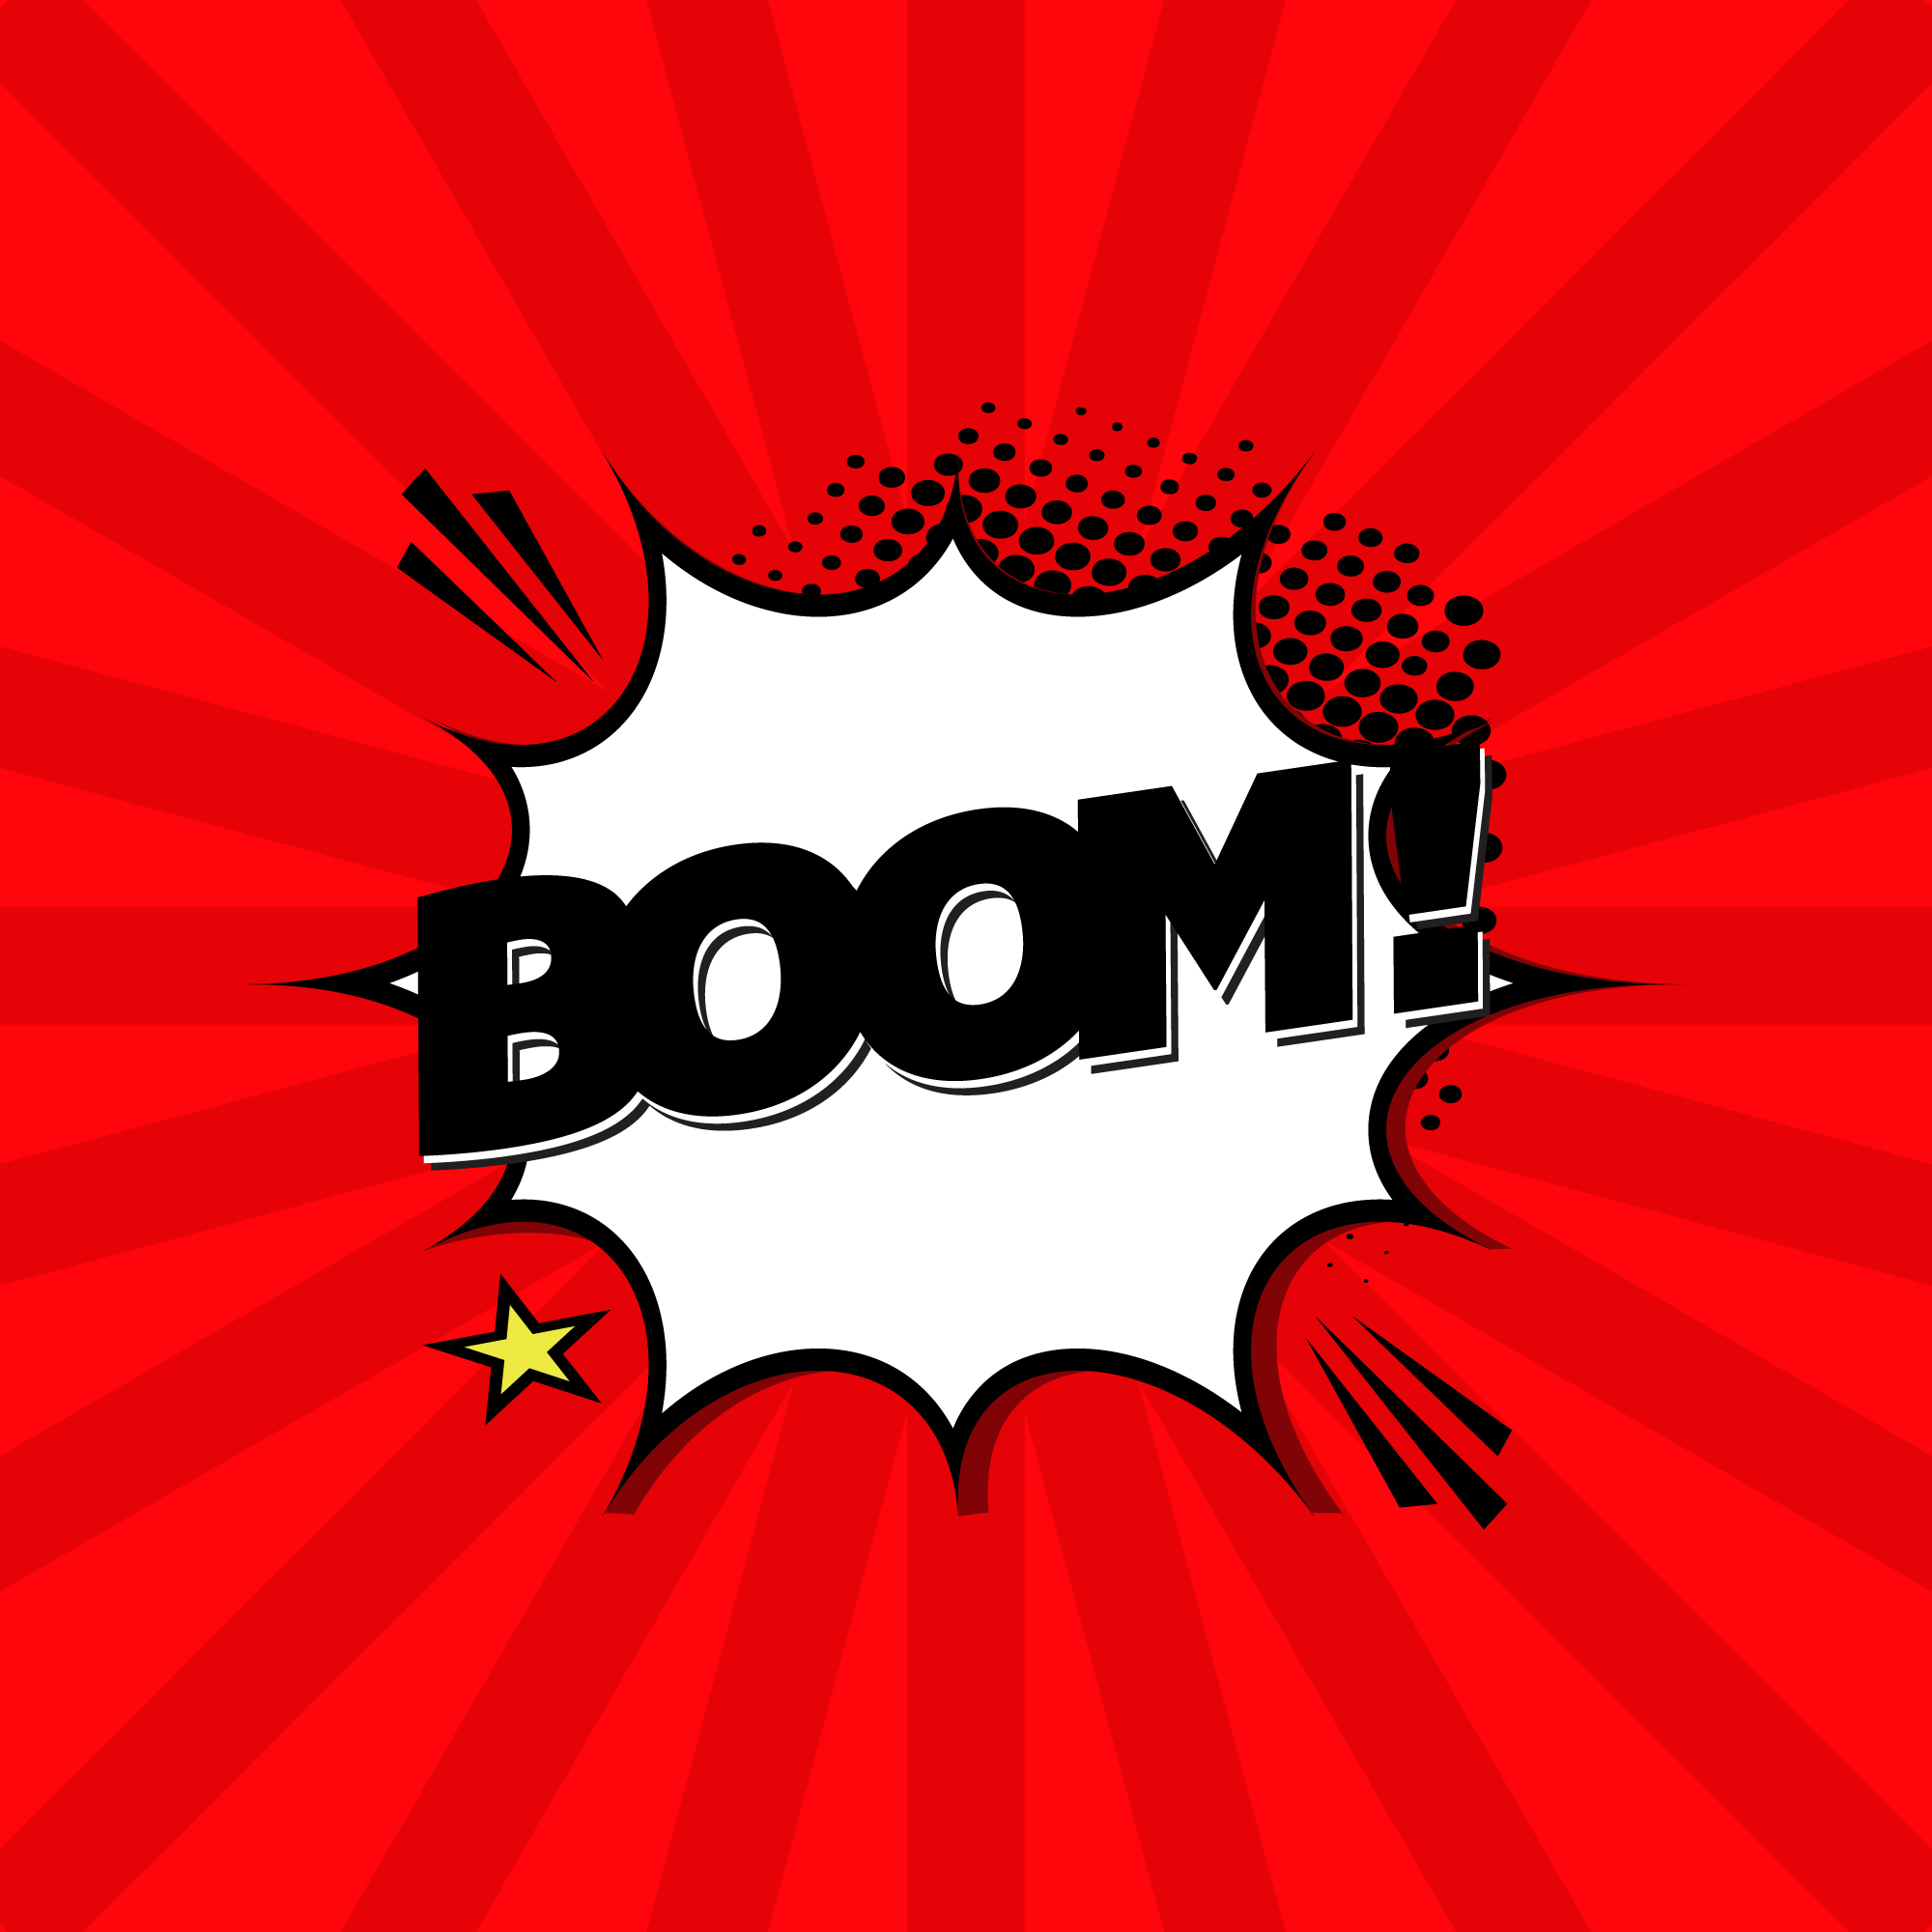 Boom expression background